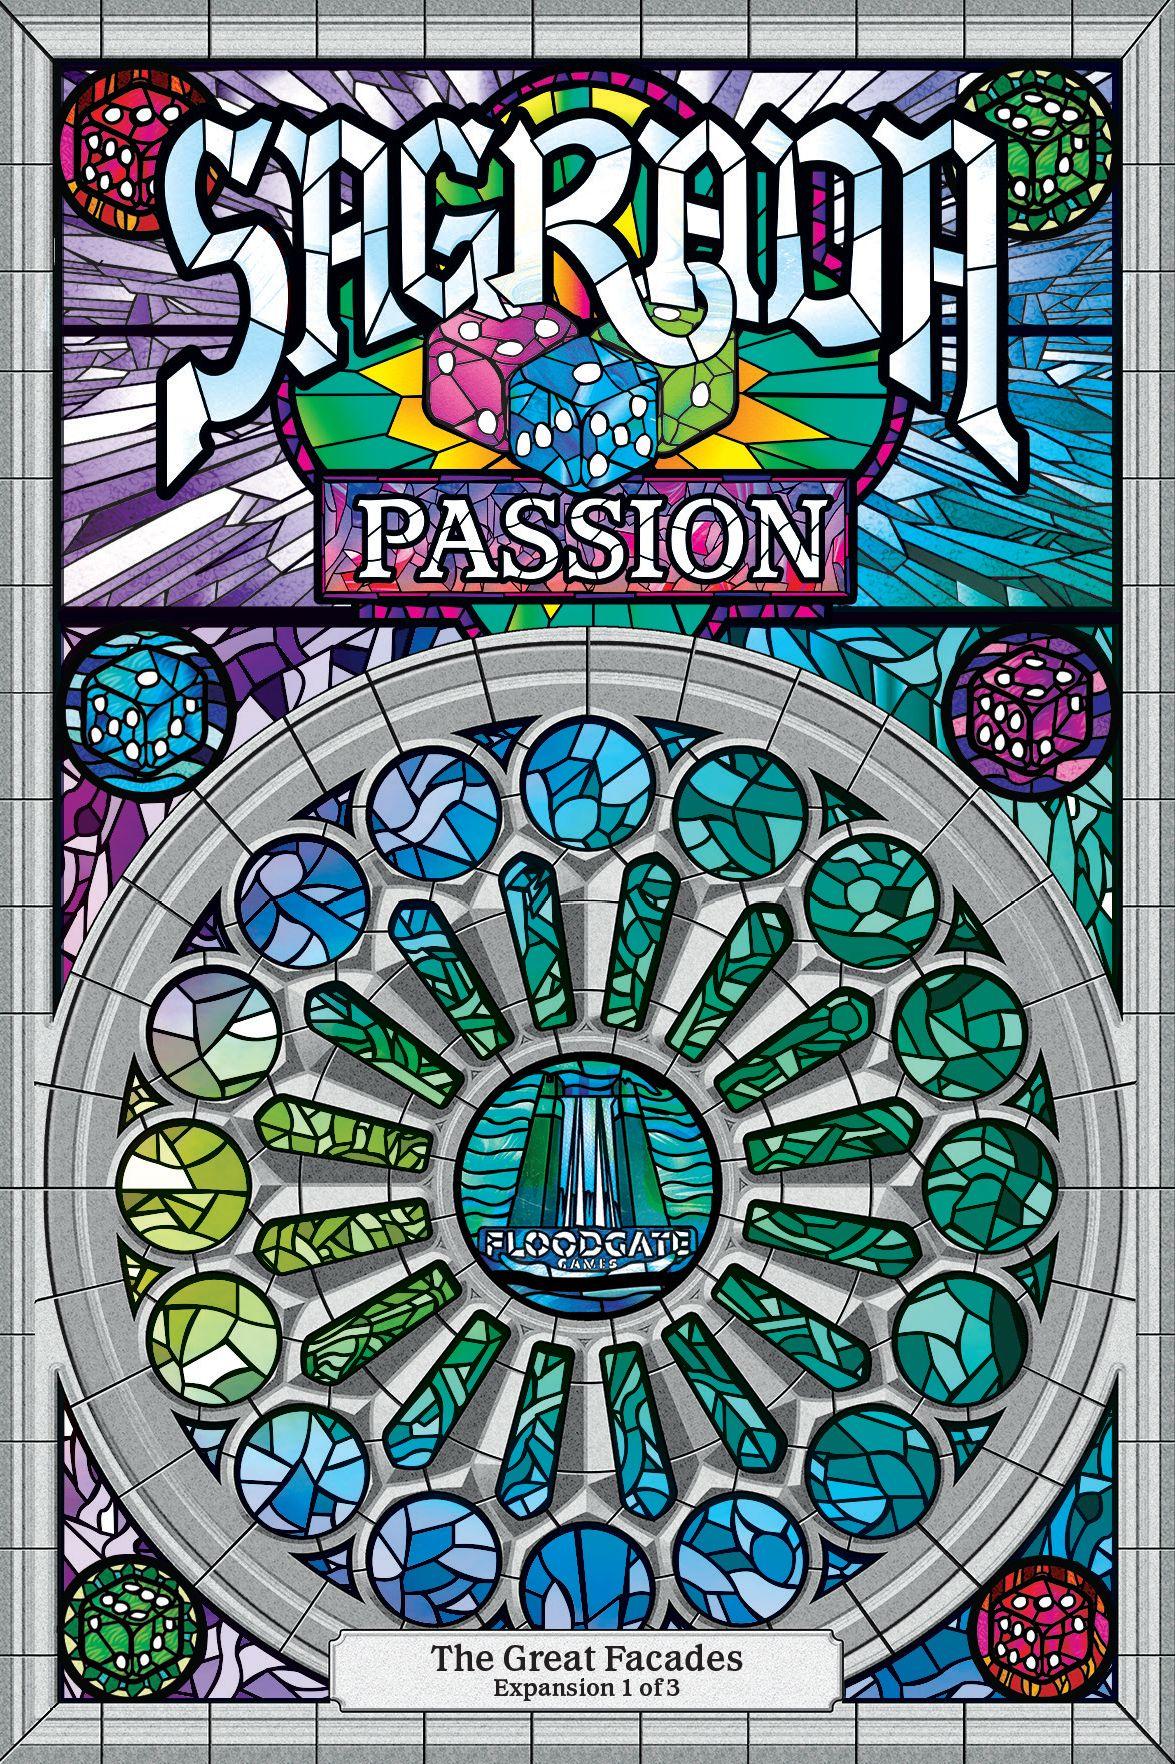 Sagrada: The Great Facades - Passion